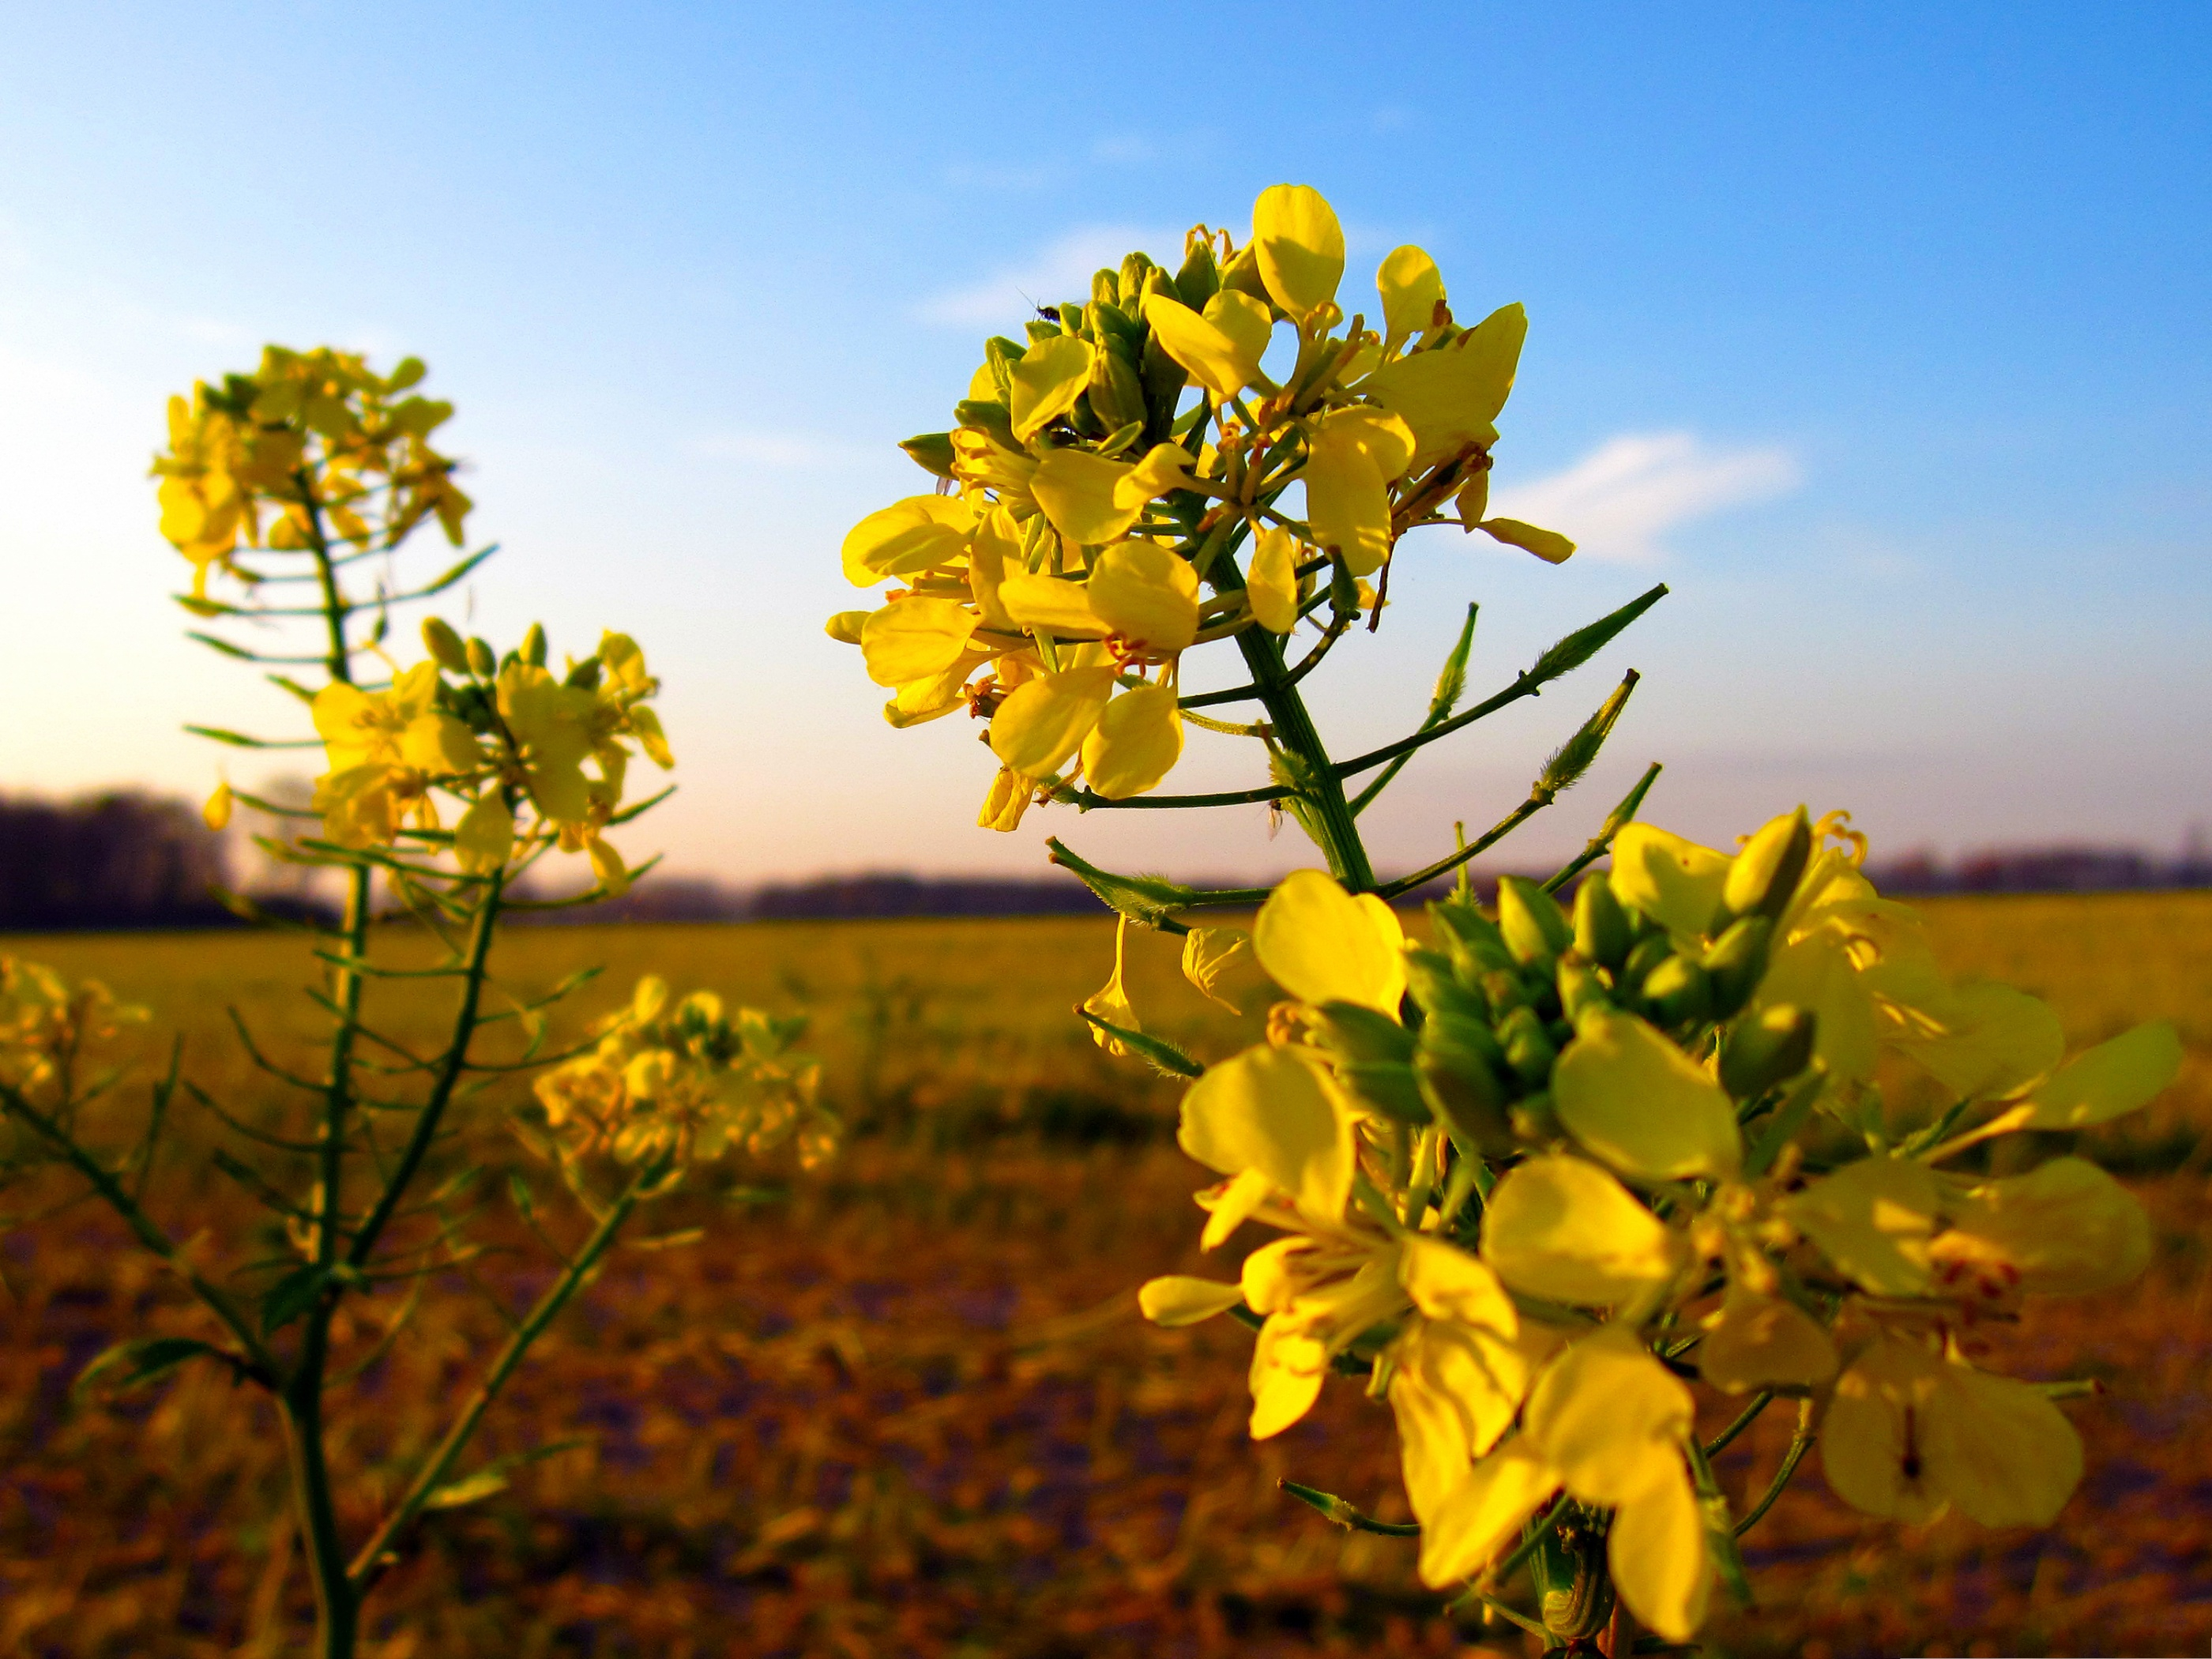 click to free download the wallpaper--Wild Mustard Flowers, Golden Blooming Flowers Under the Blue Sky, Amazing Scene 2800X2100 free wallpaper download